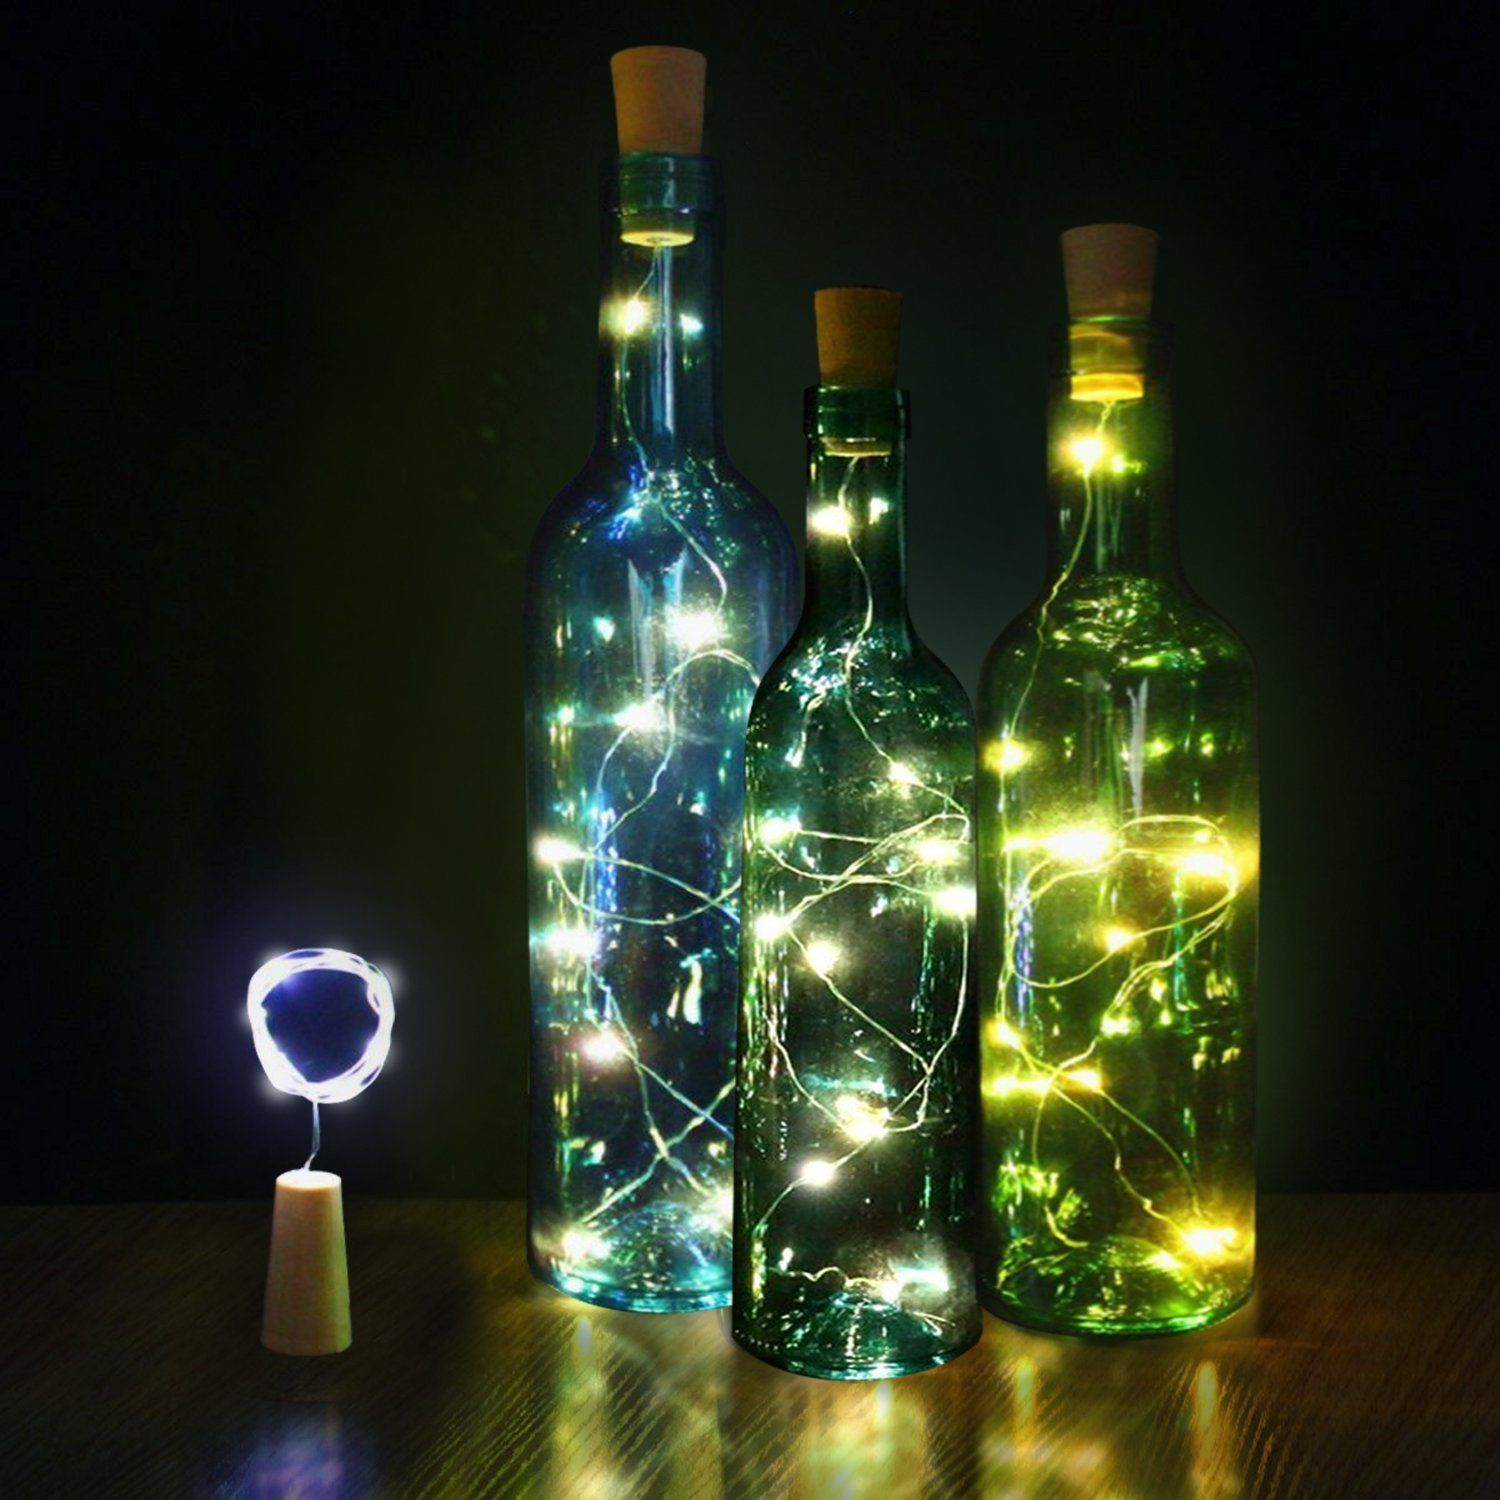 2 M Decoration Mariage Bottle Corks Light String Glass Crafts Decorate At  Night Lights Lamp Party Wedding Decorations,Q